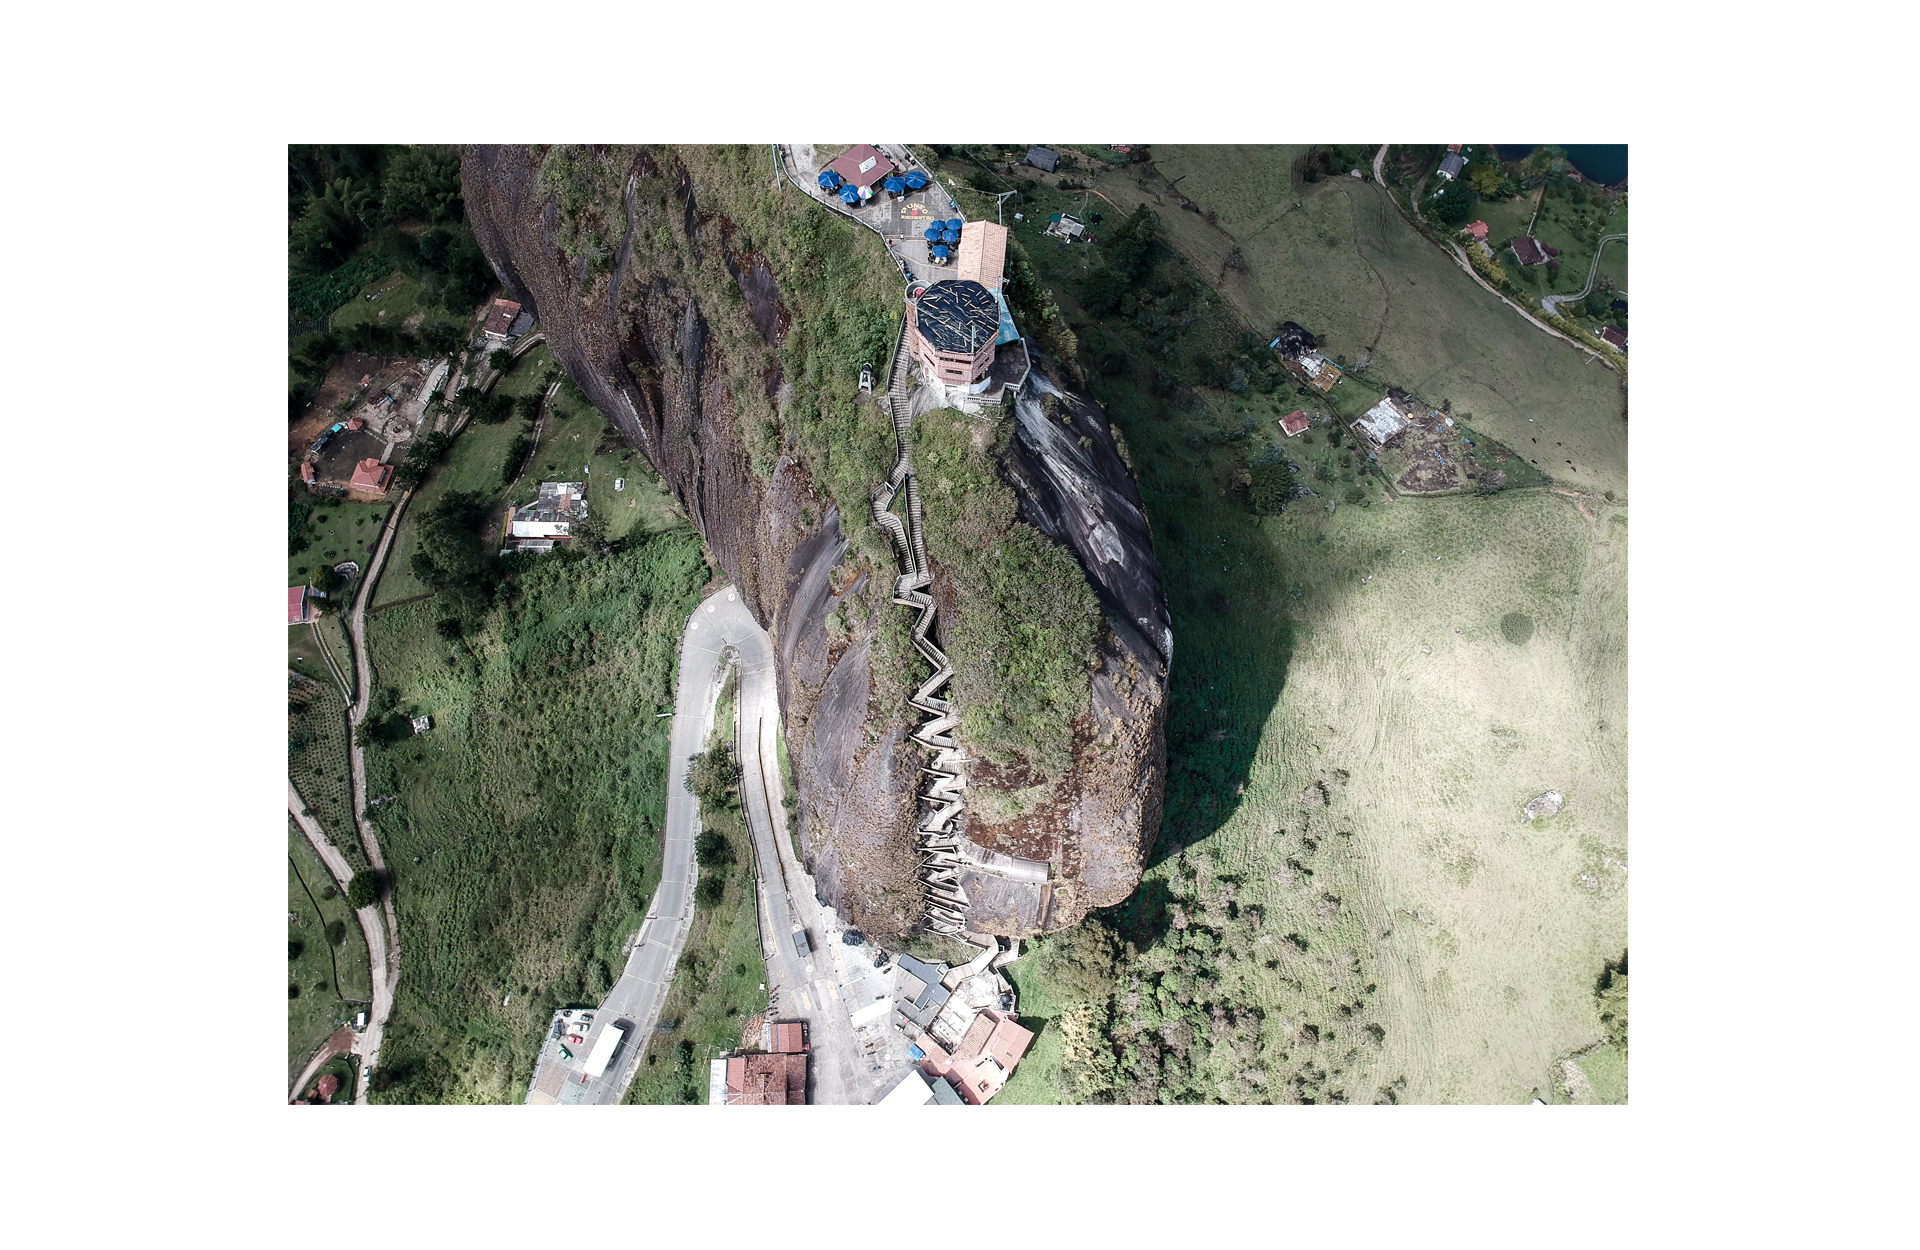 view from the top of the penol, view of the stairway taken with a drone